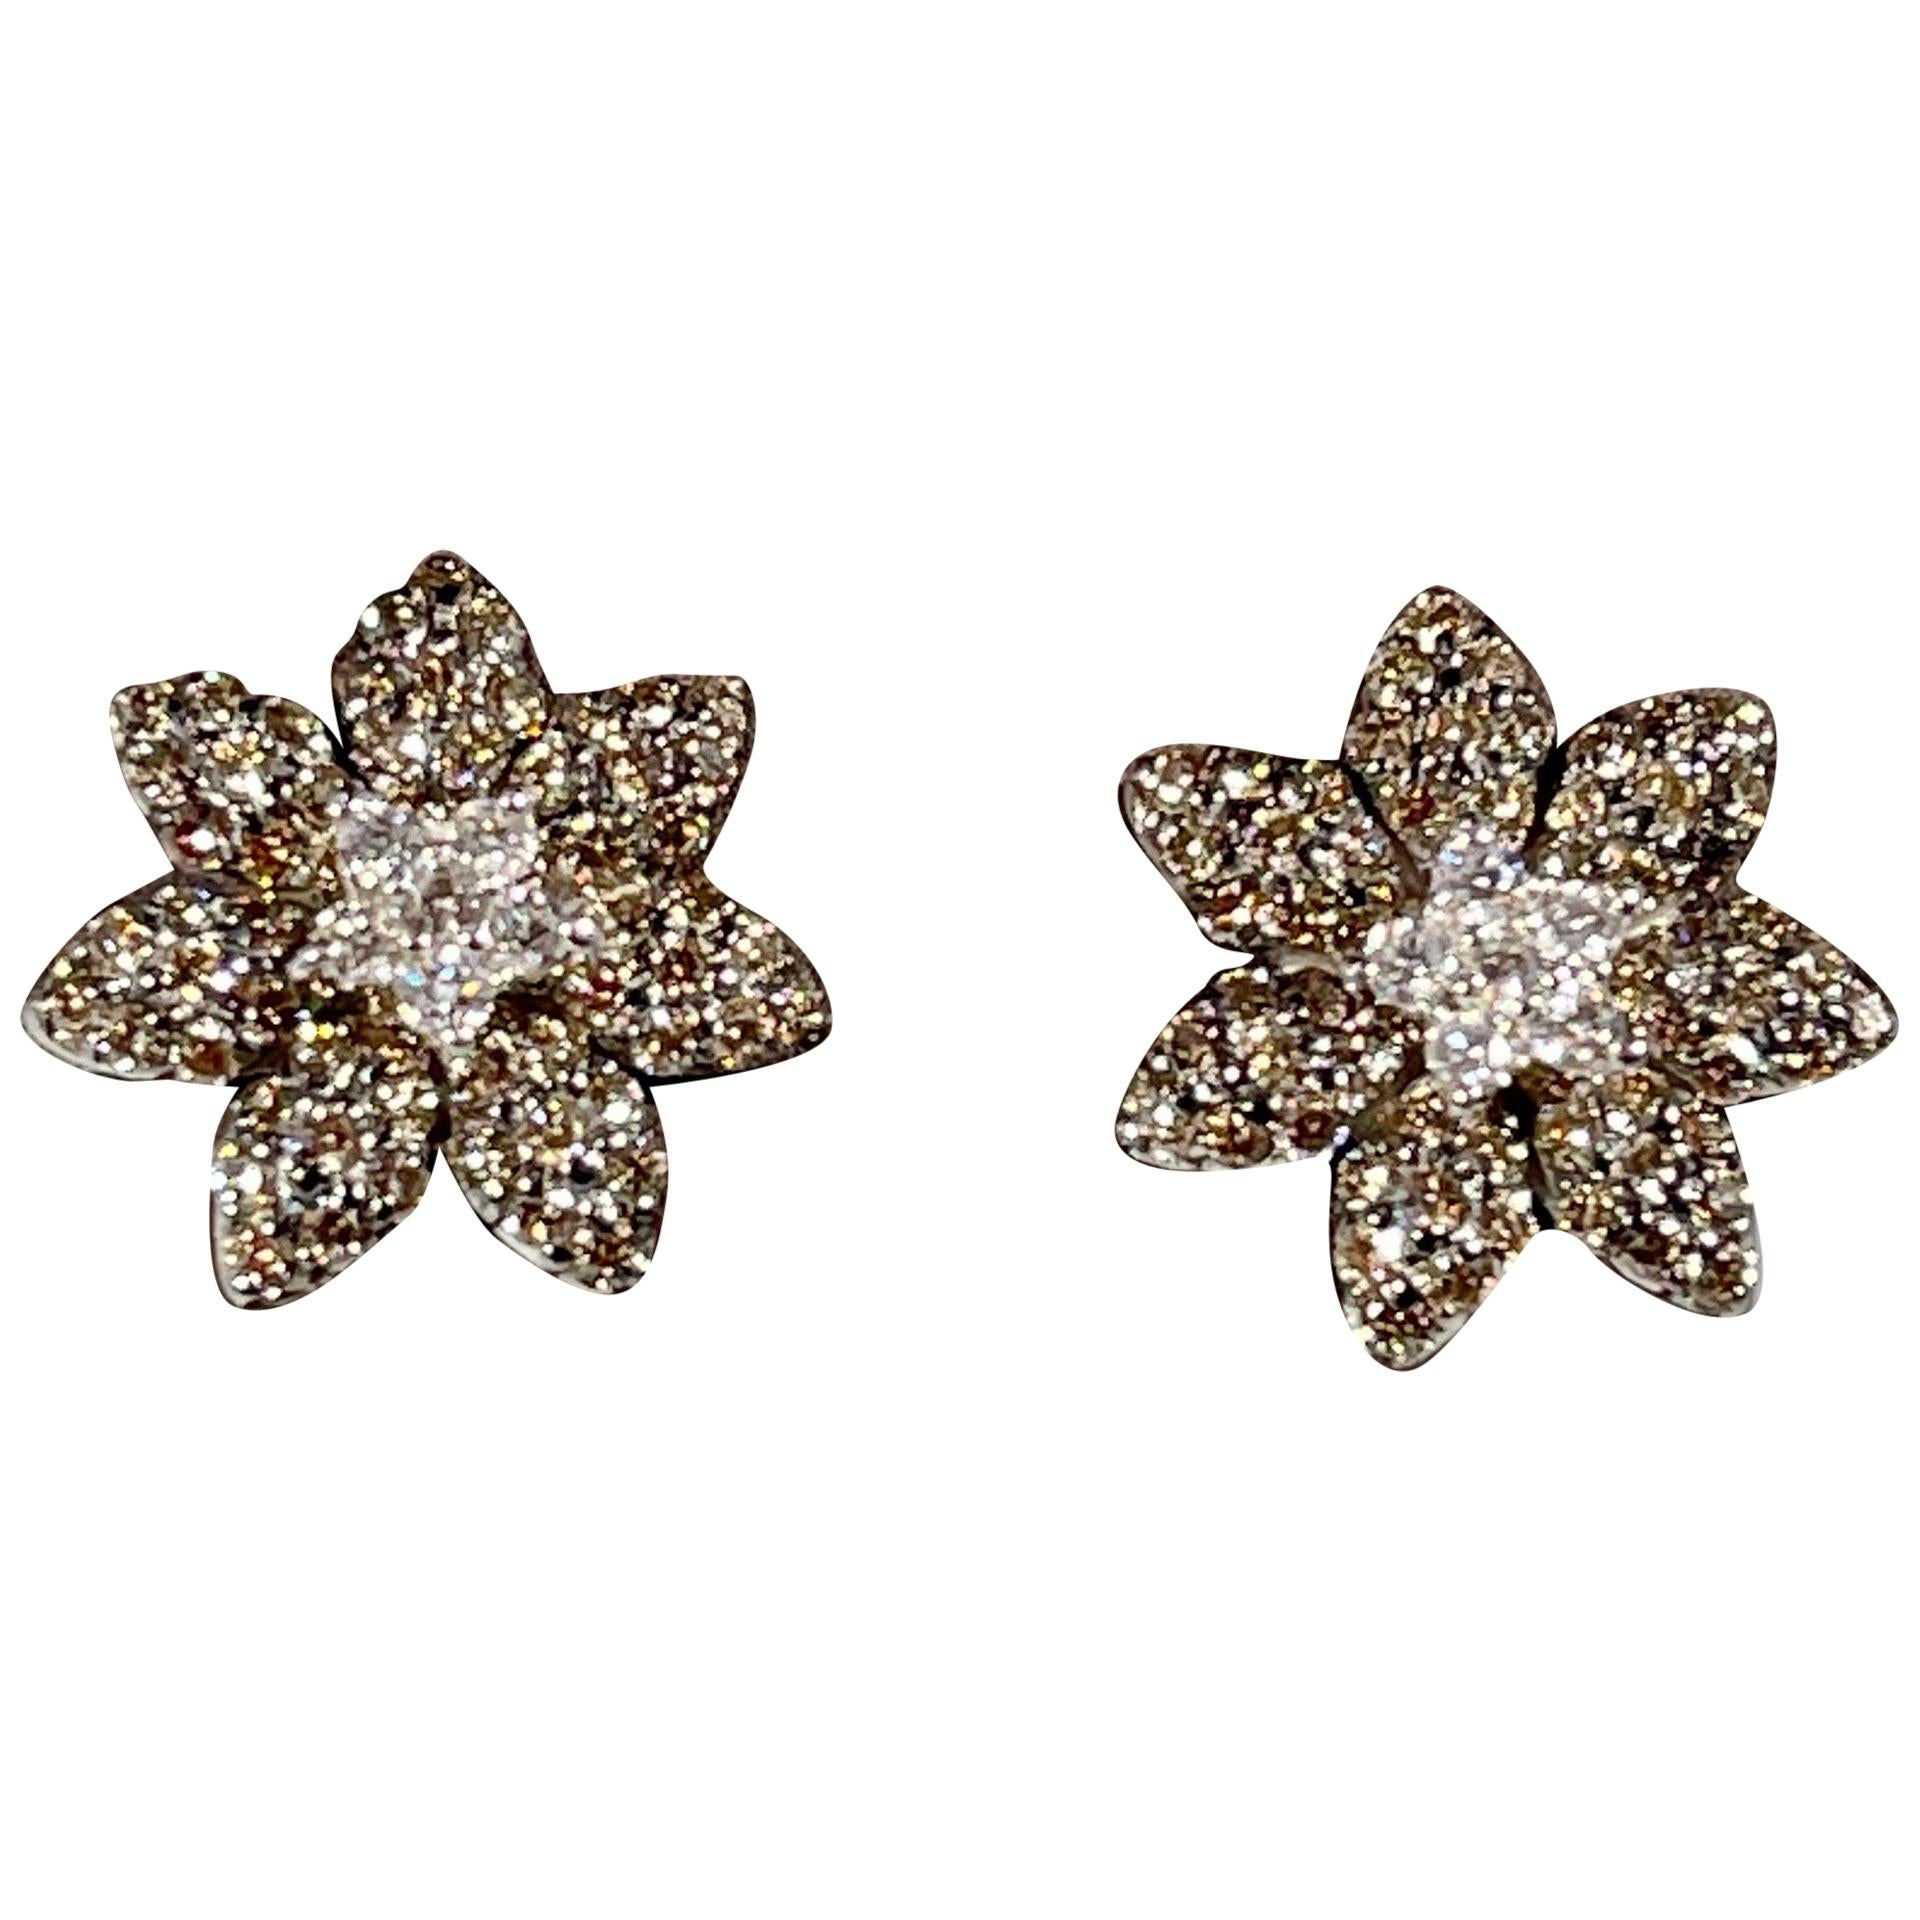 Designer Effy's 1.5 Carat Expresso Diamond Flower Stud Earrings 14 Karat Gold